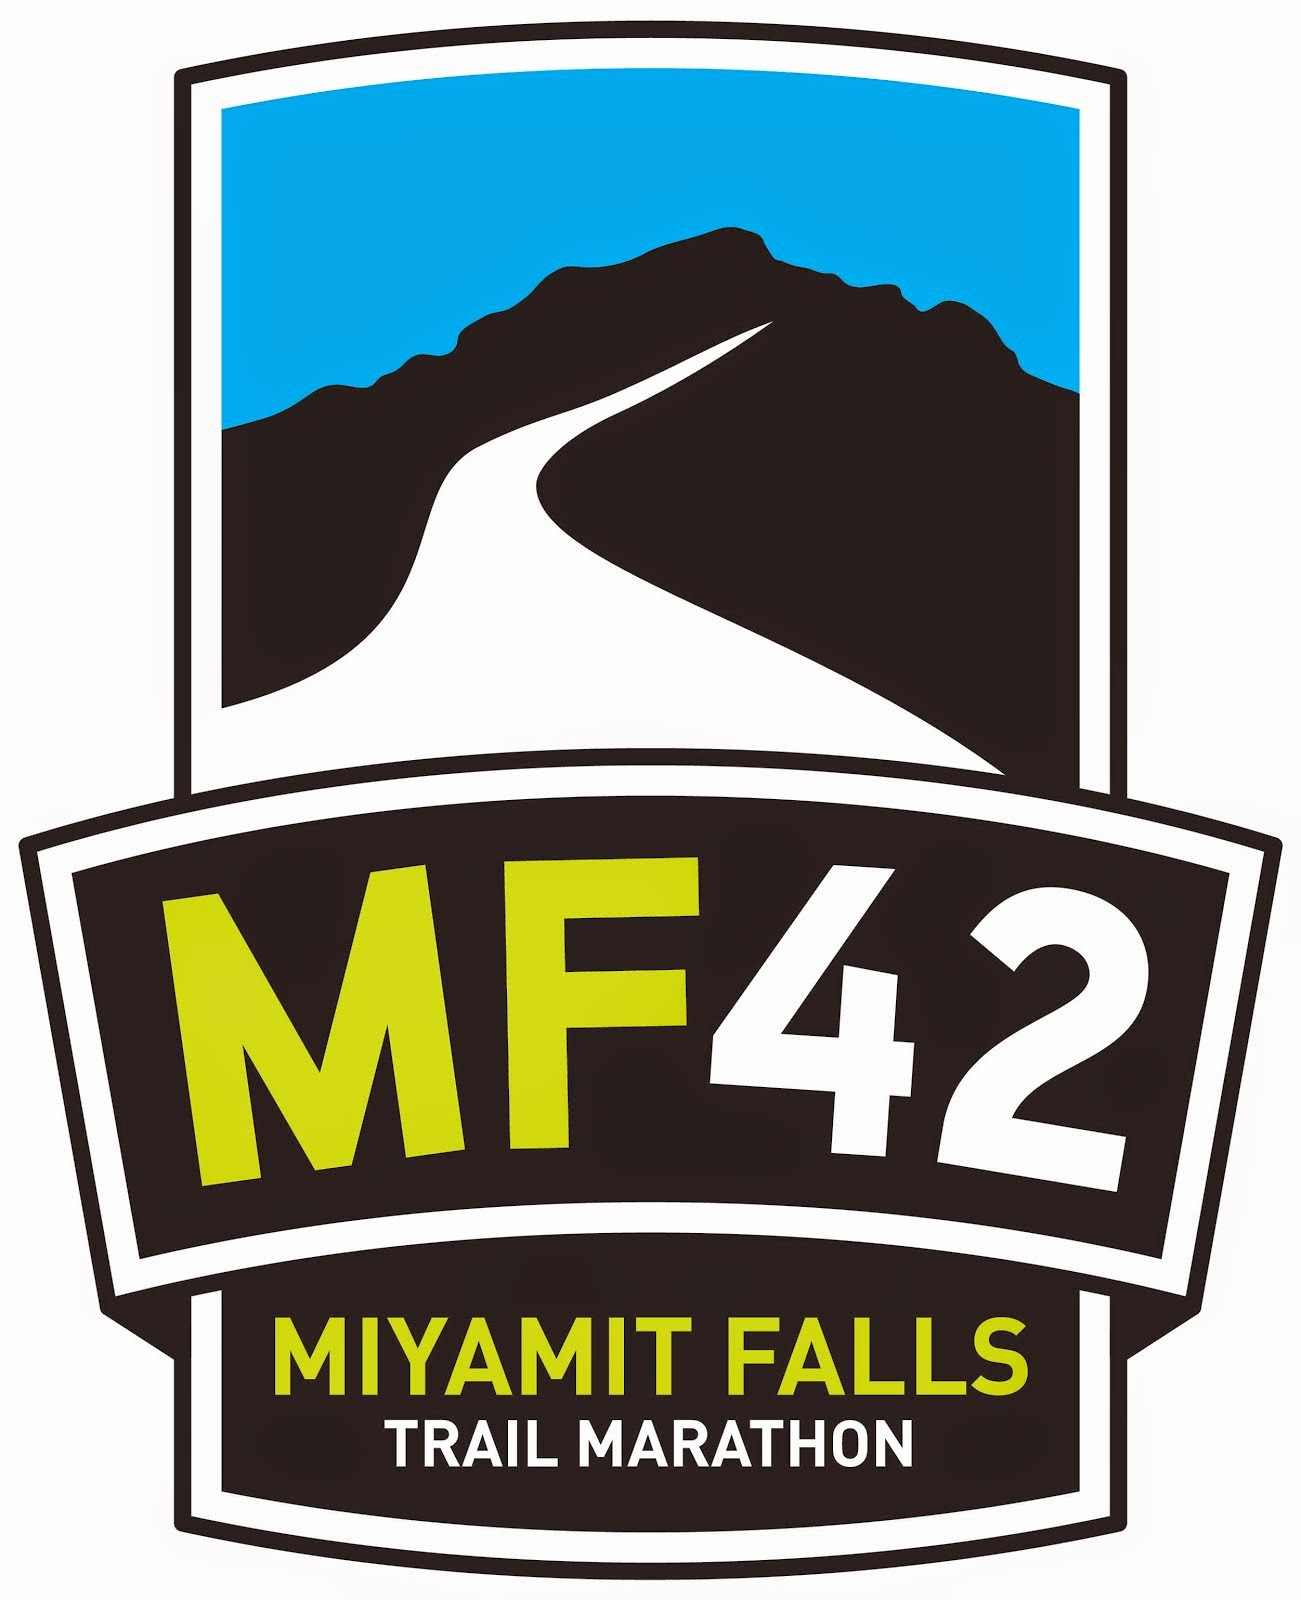 MIYAMIT FALLS TRAIL MARATHON is a qualifying race of CM50